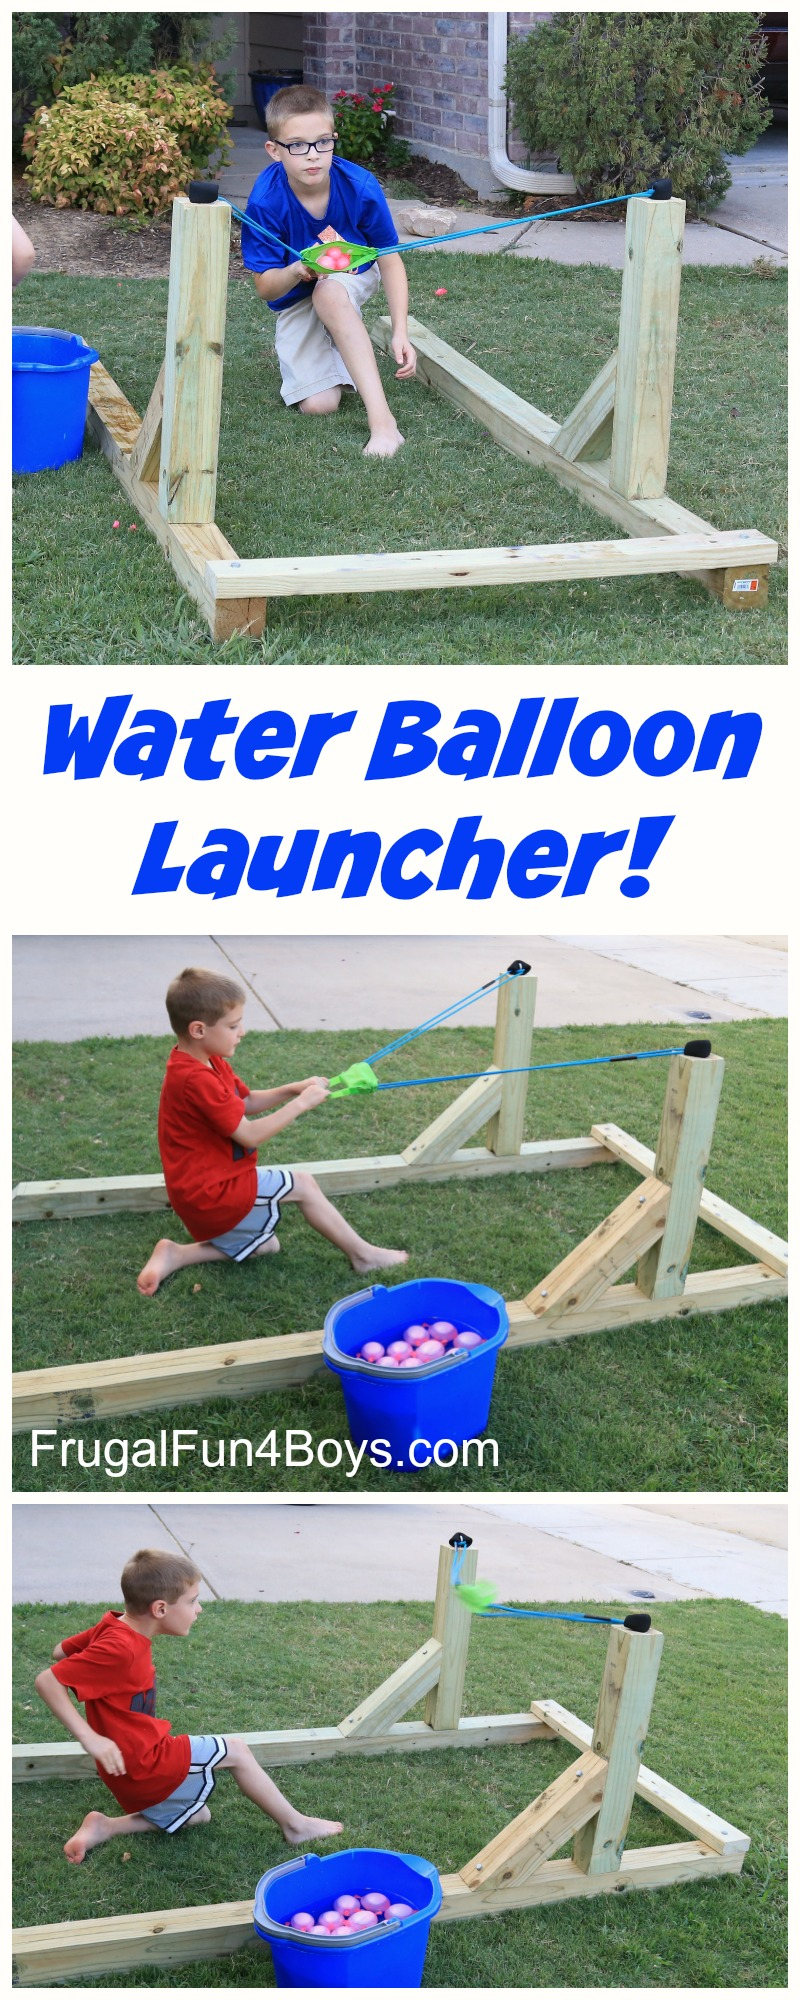 How to build an awesome water balloon launcher that the whole family will love!